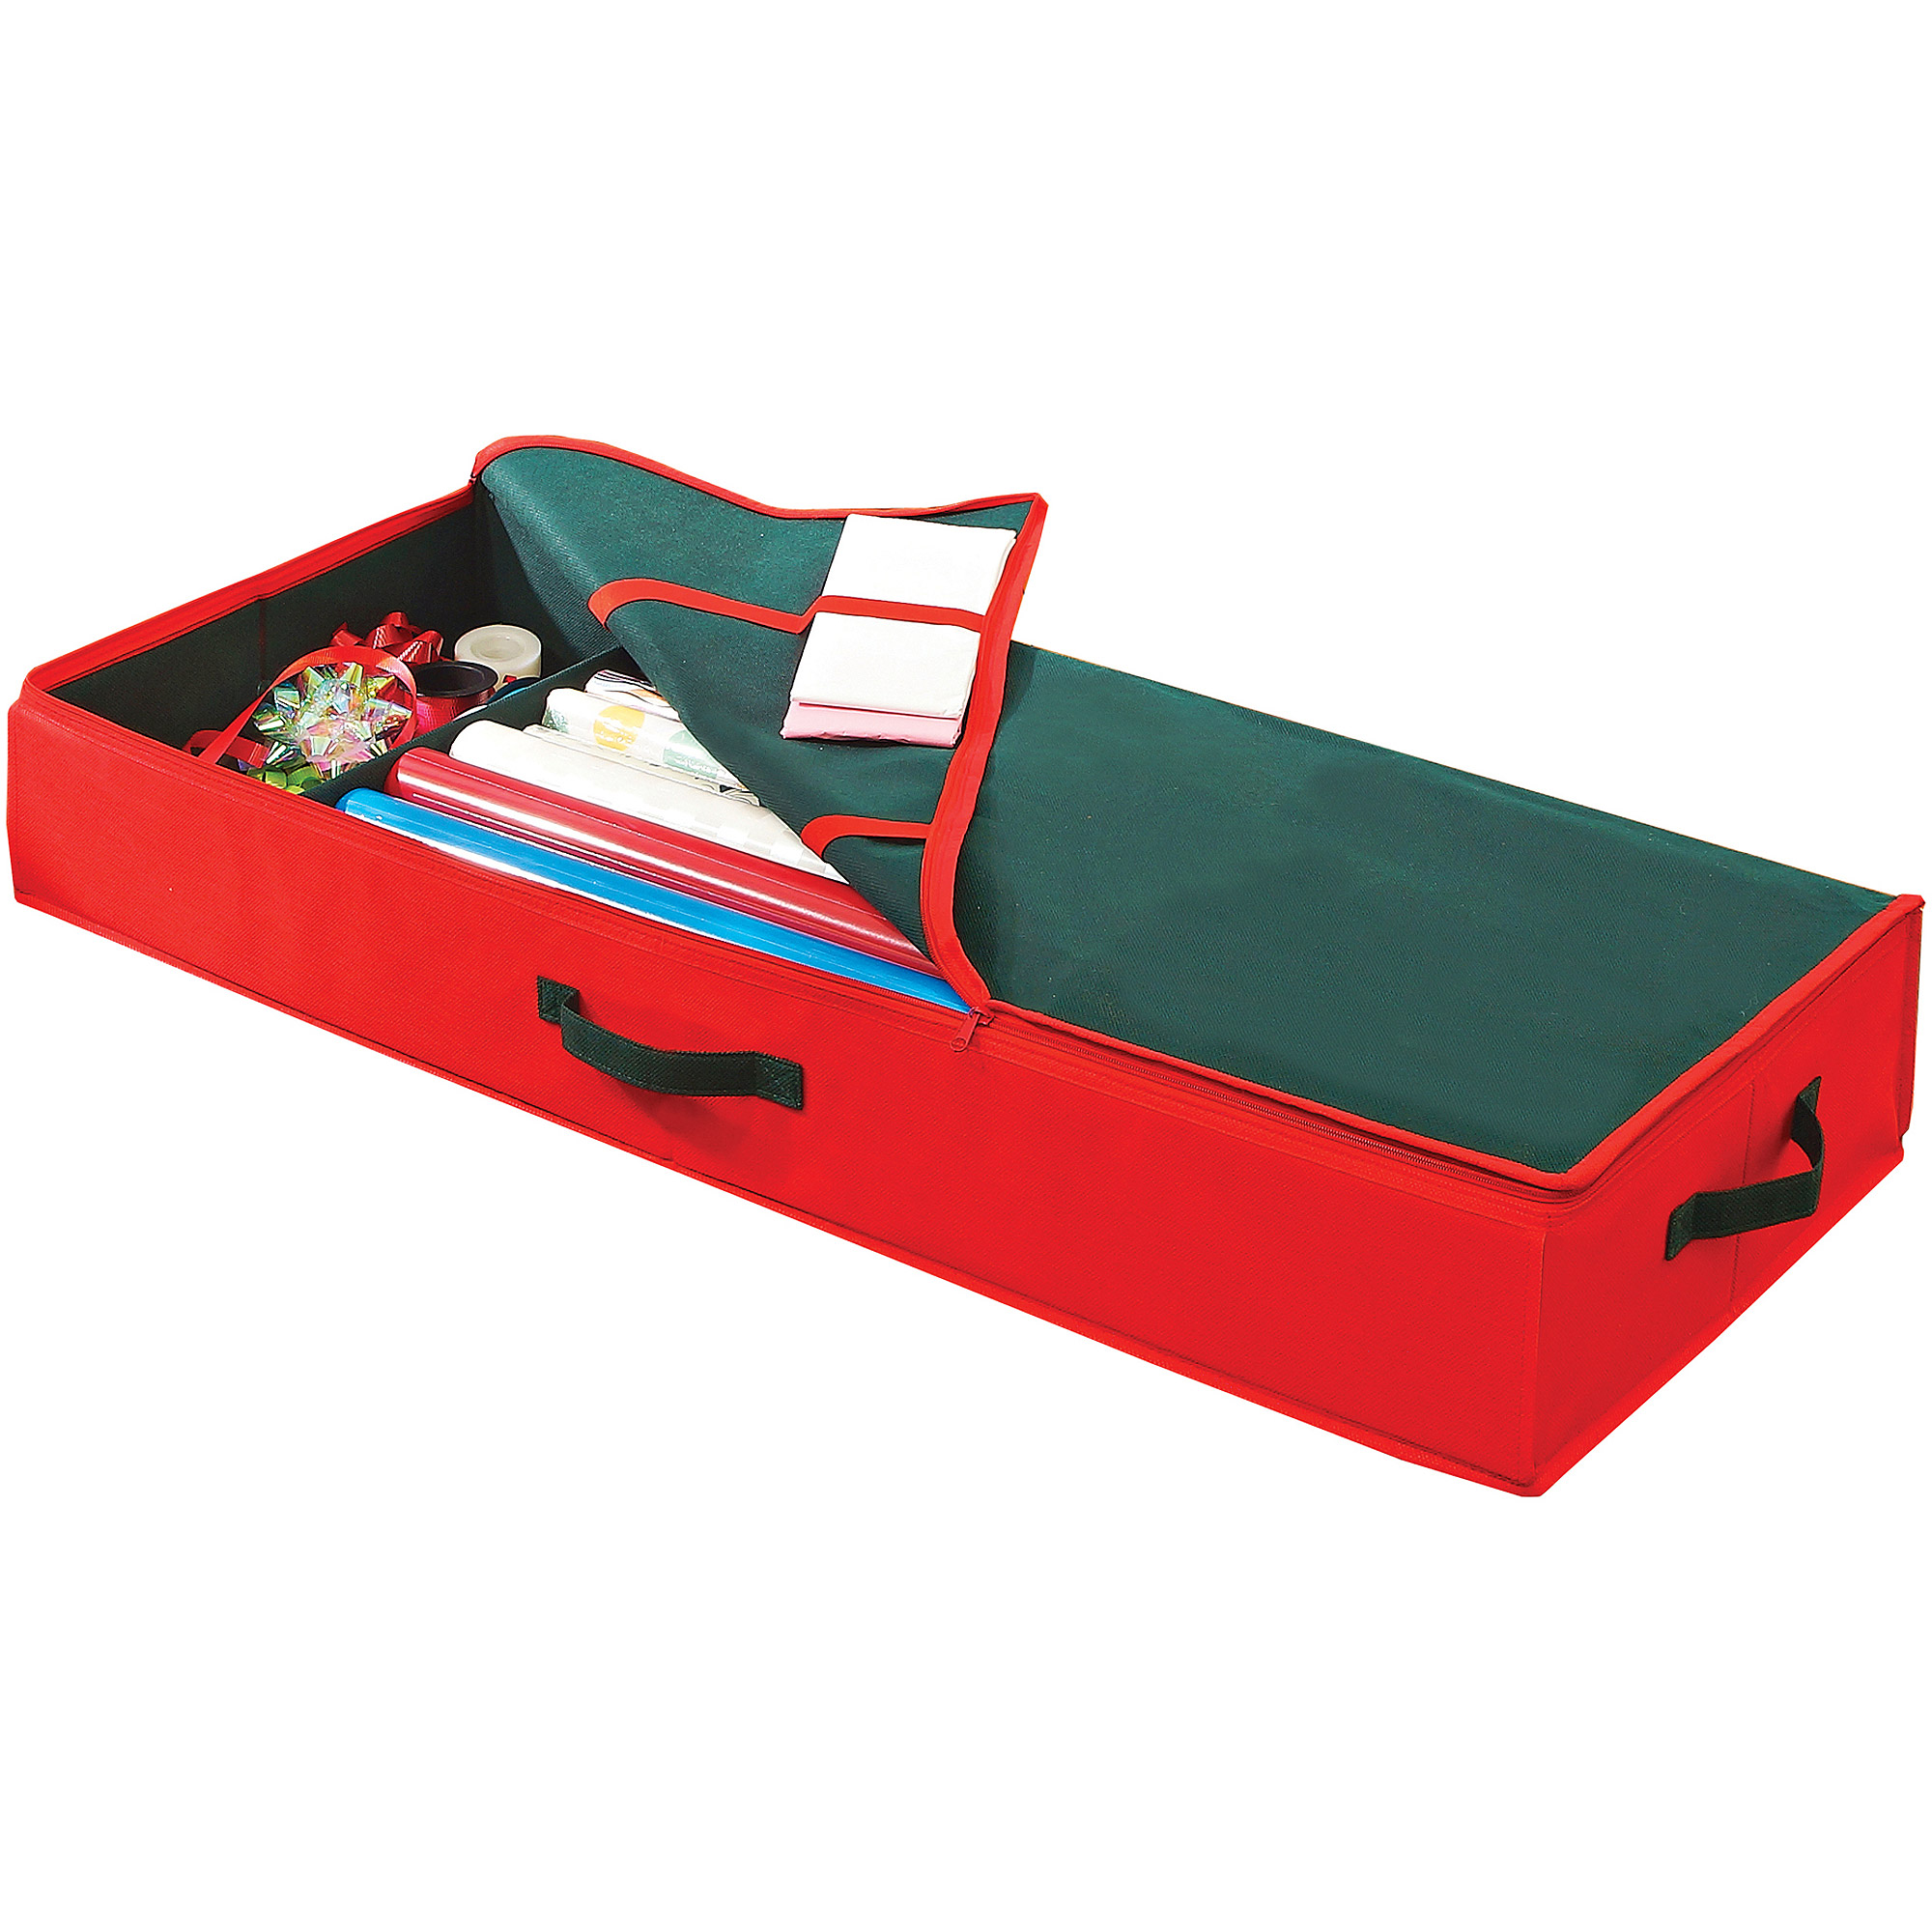 Simplify Christmas Gift Wrap Box/Organizer, Red